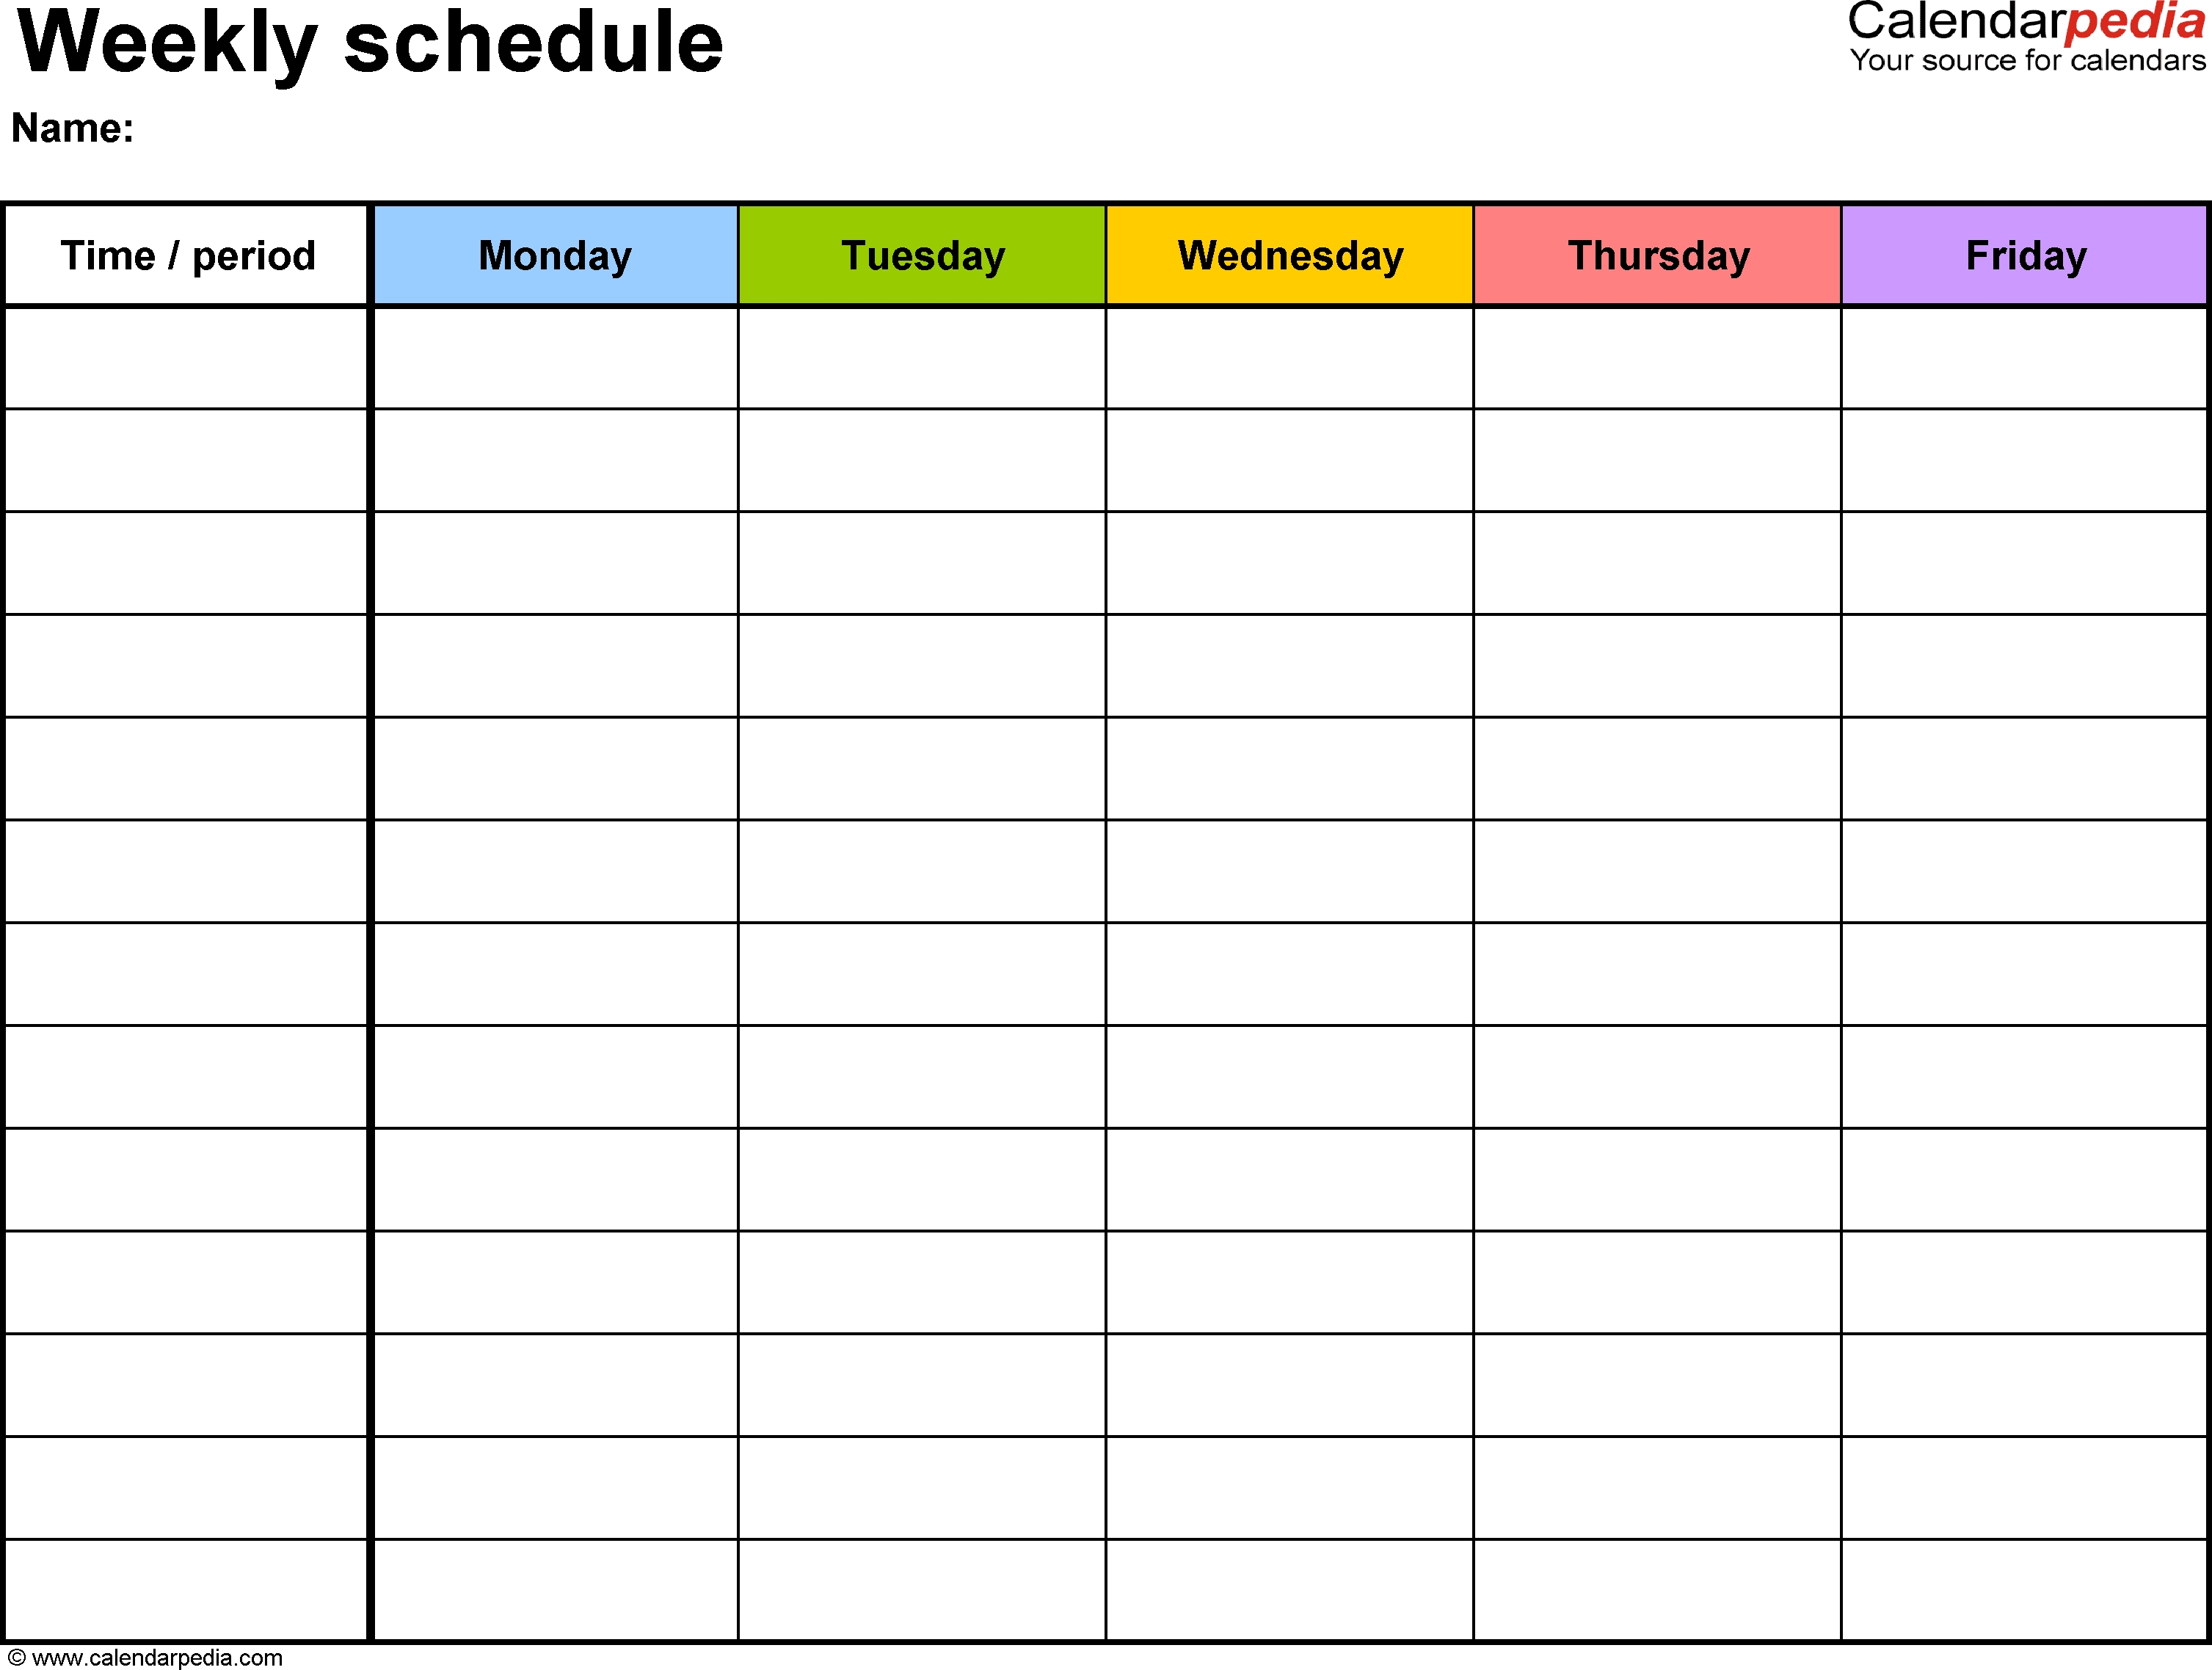 Free Weekly Schedule Templates For Word - 18 Templates with Monday Through Friday Blank Calendar Template